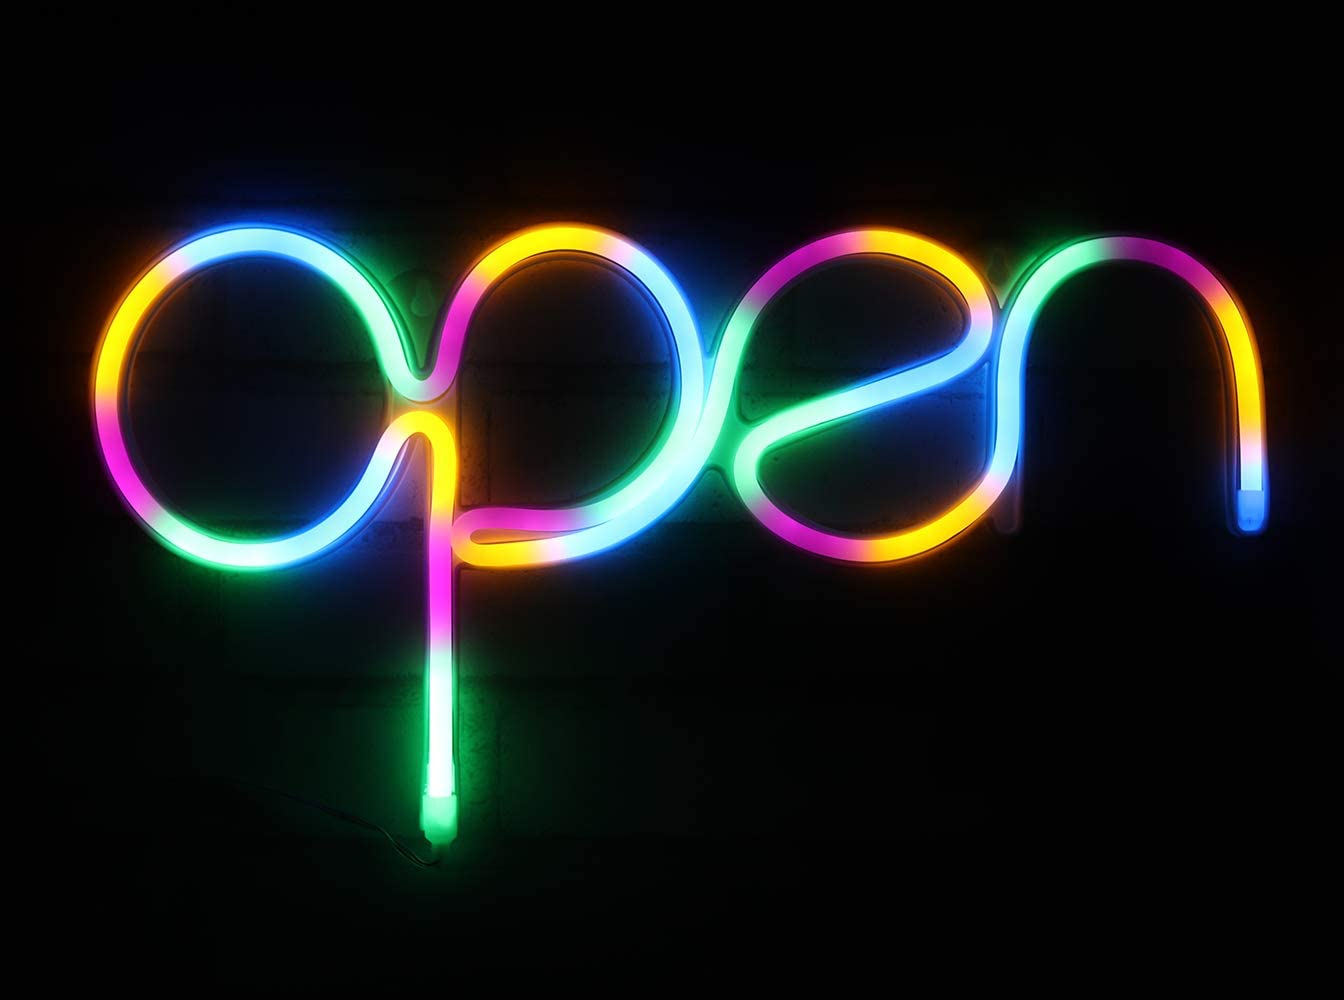 Open Sign Pink USB Powered LED Sign 15.5x8.4 inch,Long Cord 11.5 FT Girls LED Neon Open Sign Light for Pub,Bar,Beer,Caf/é,Ice Cream Truck,Spa,Beauty or Hair Salon,Florist,Massage,Tattoo Store OP